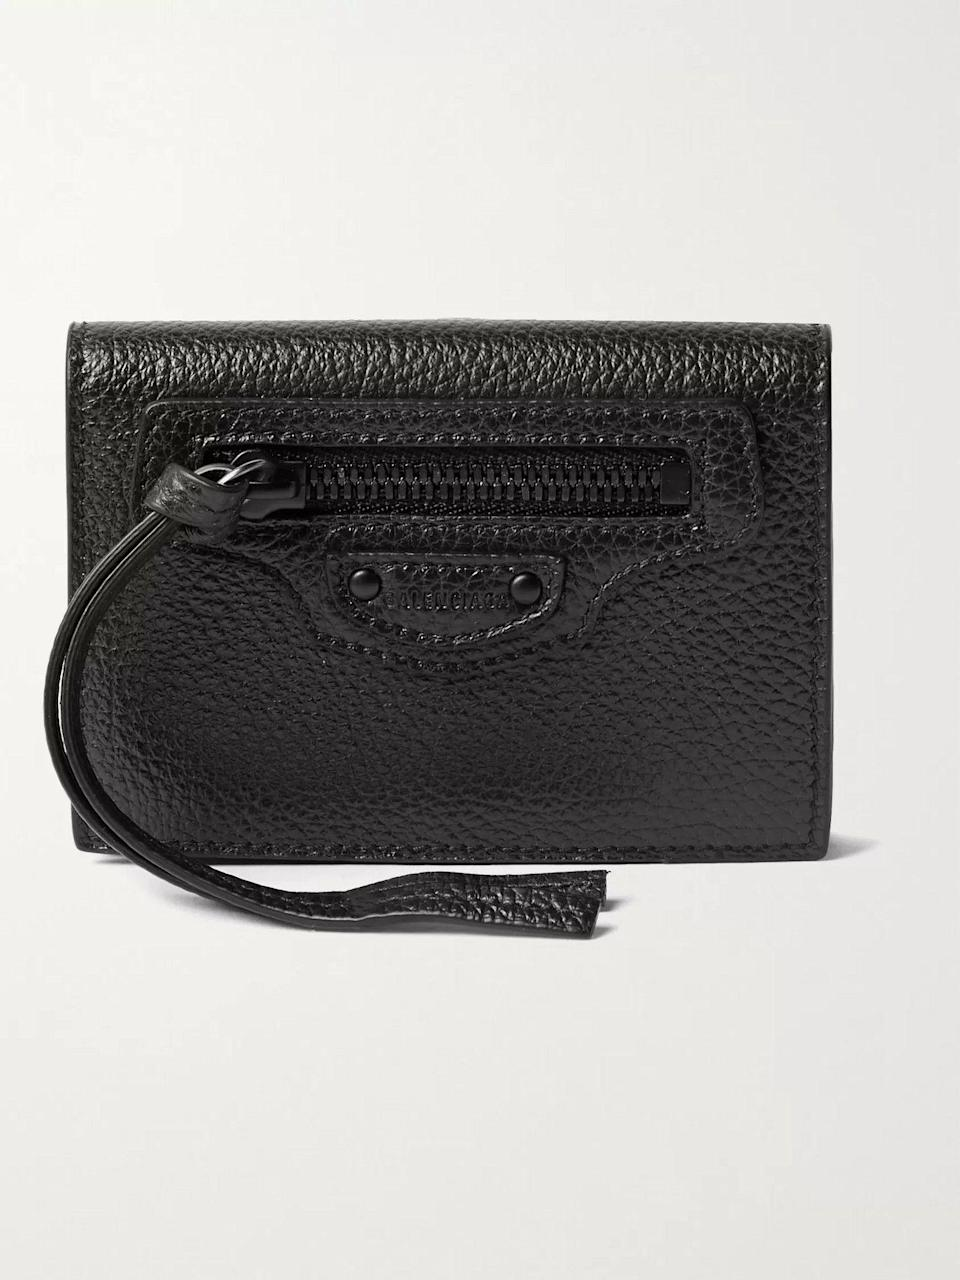 """<p><strong>Balenciaga</strong></p><p>mrporter.com</p><p><strong>$450.00</strong></p><p><a href=""""https://go.redirectingat.com?id=74968X1596630&url=https%3A%2F%2Fwww.mrporter.com%2Fen-us%2Fmens%2Fproduct%2Fbalenciaga%2Faccessories%2Fzip-wallets%2Ffull-grain-leather-coin-wallet%2F19971654707377223&sref=https%3A%2F%2Fwww.esquire.com%2Fstyle%2Fmens-accessories%2Fg35924710%2Fmens-luxury-wallets%2F"""" rel=""""nofollow noopener"""" target=""""_blank"""" data-ylk=""""slk:Shop Now"""" class=""""link rapid-noclick-resp"""">Shop Now</a></p><p>Who knew a simple zipper pull could look so damn cool? </p>"""